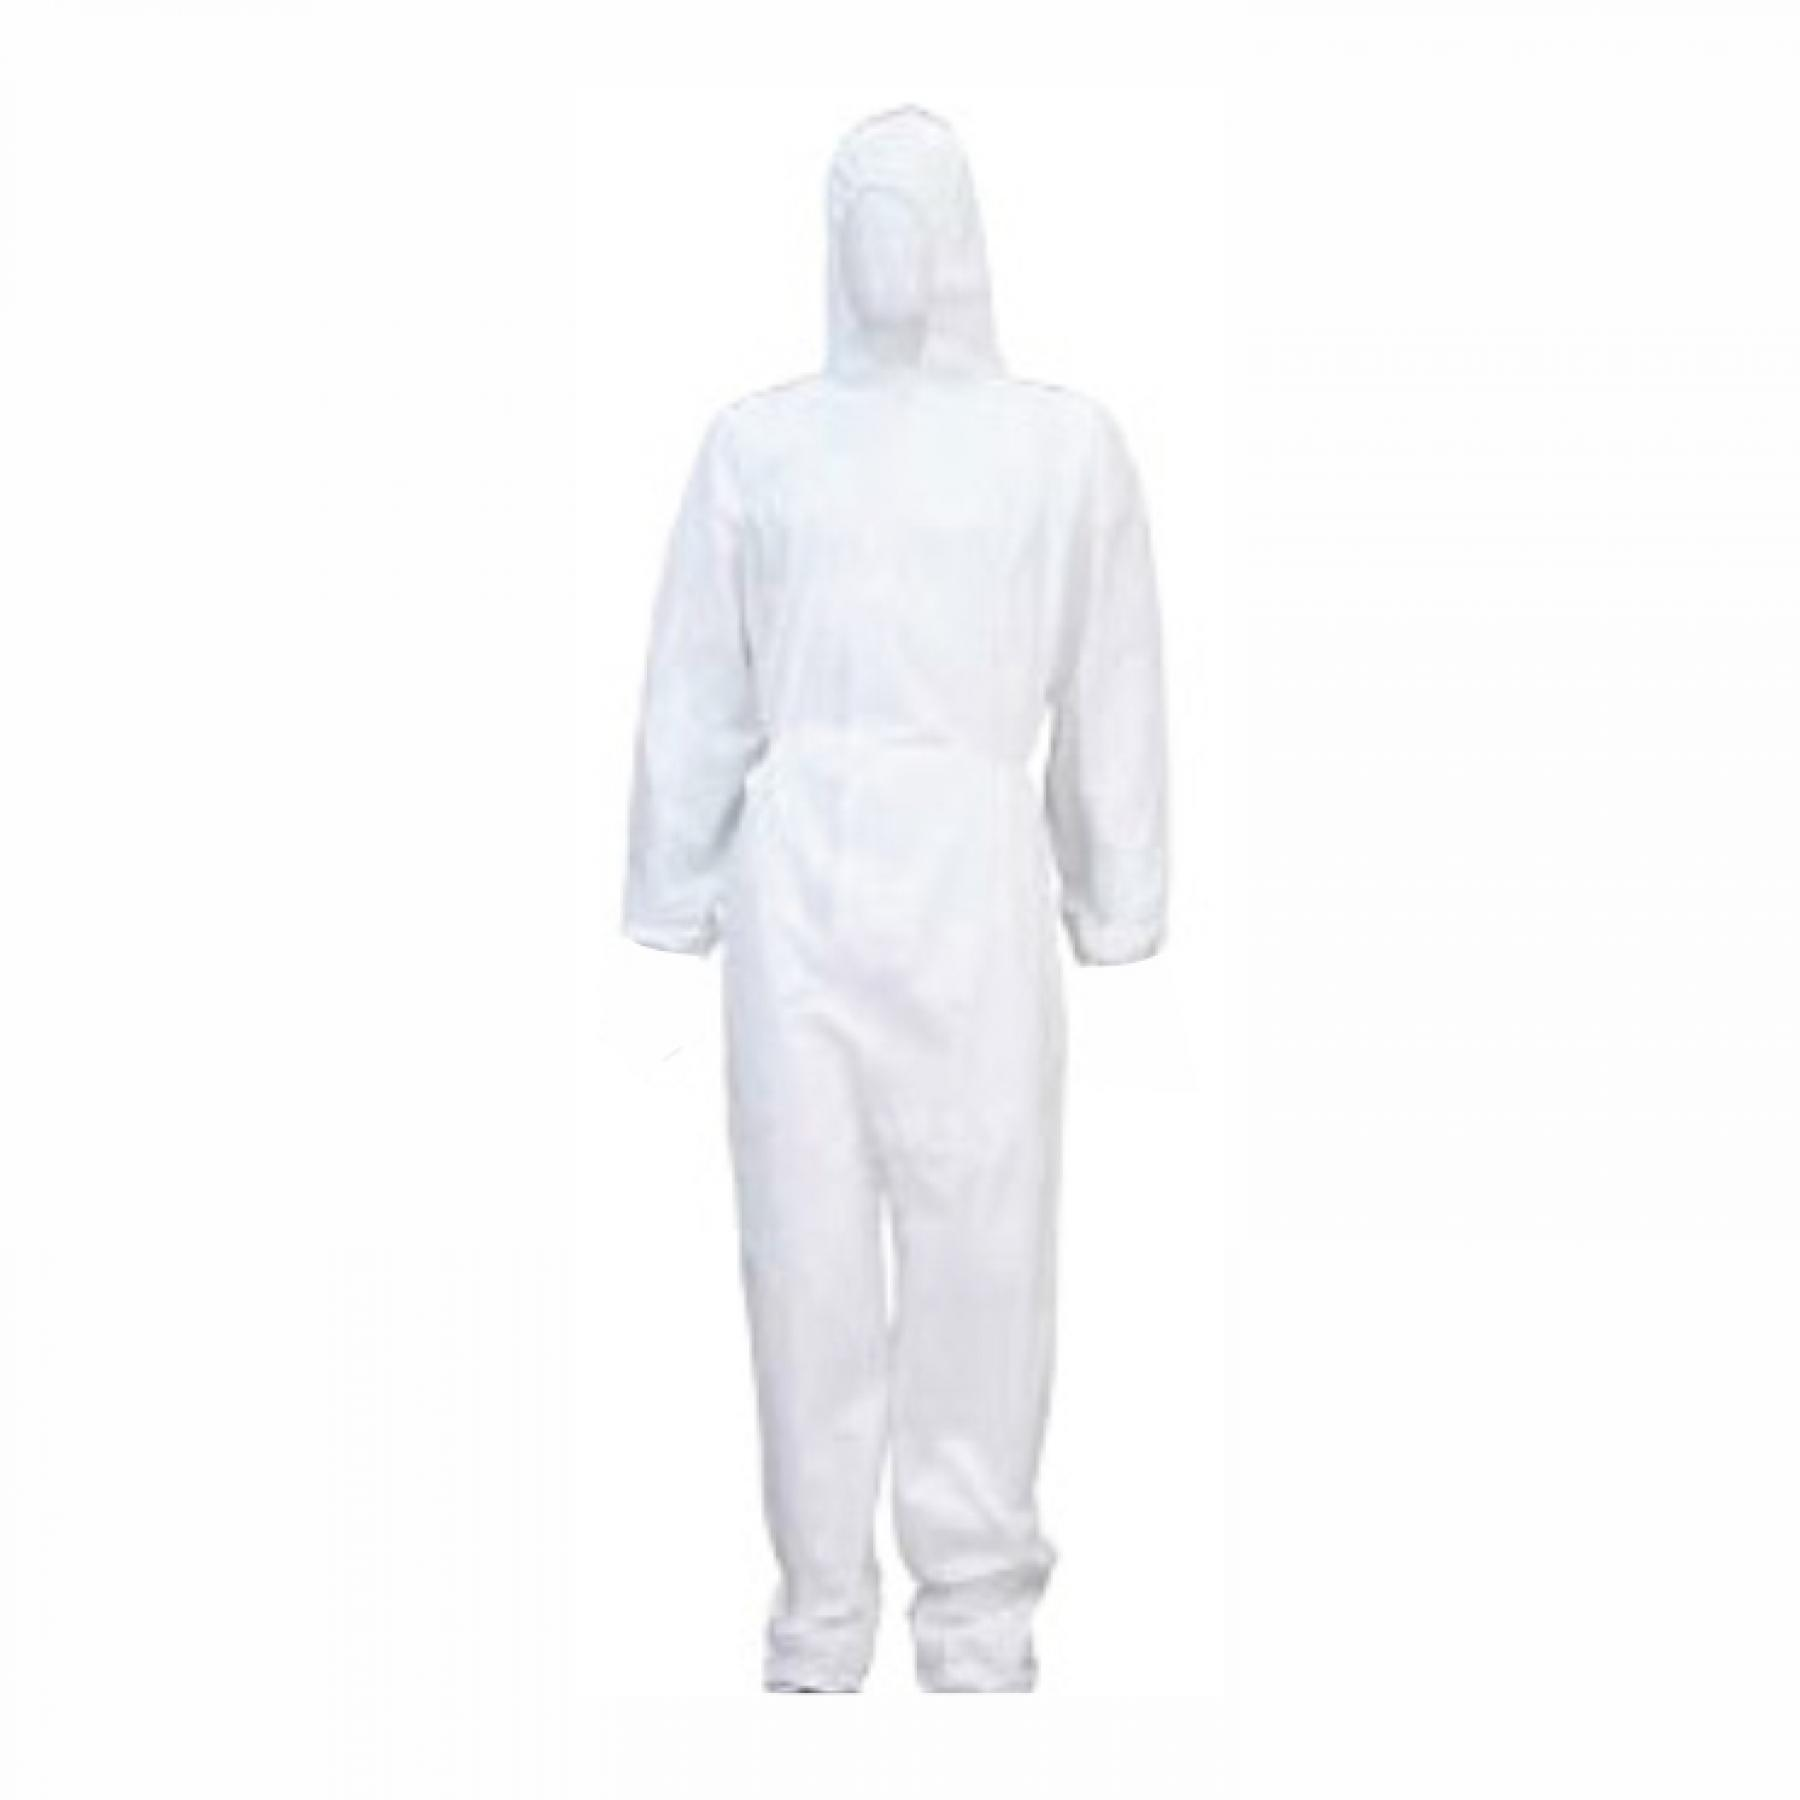 Promax White Disposable Overalls, 3x Large